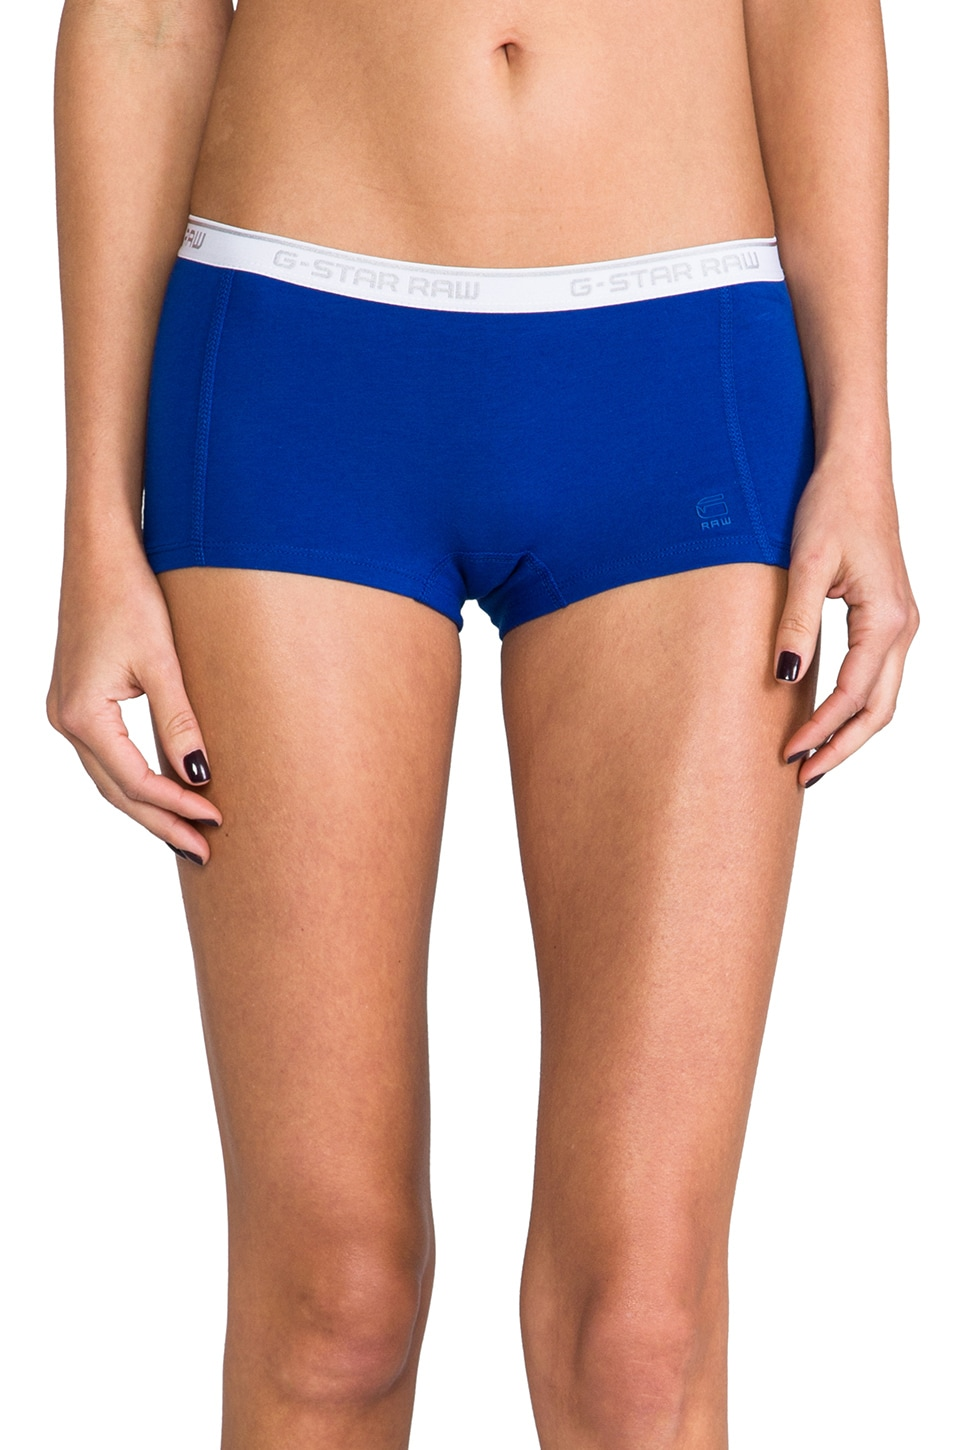 G-Star Sport Underwear in Hudson Blue